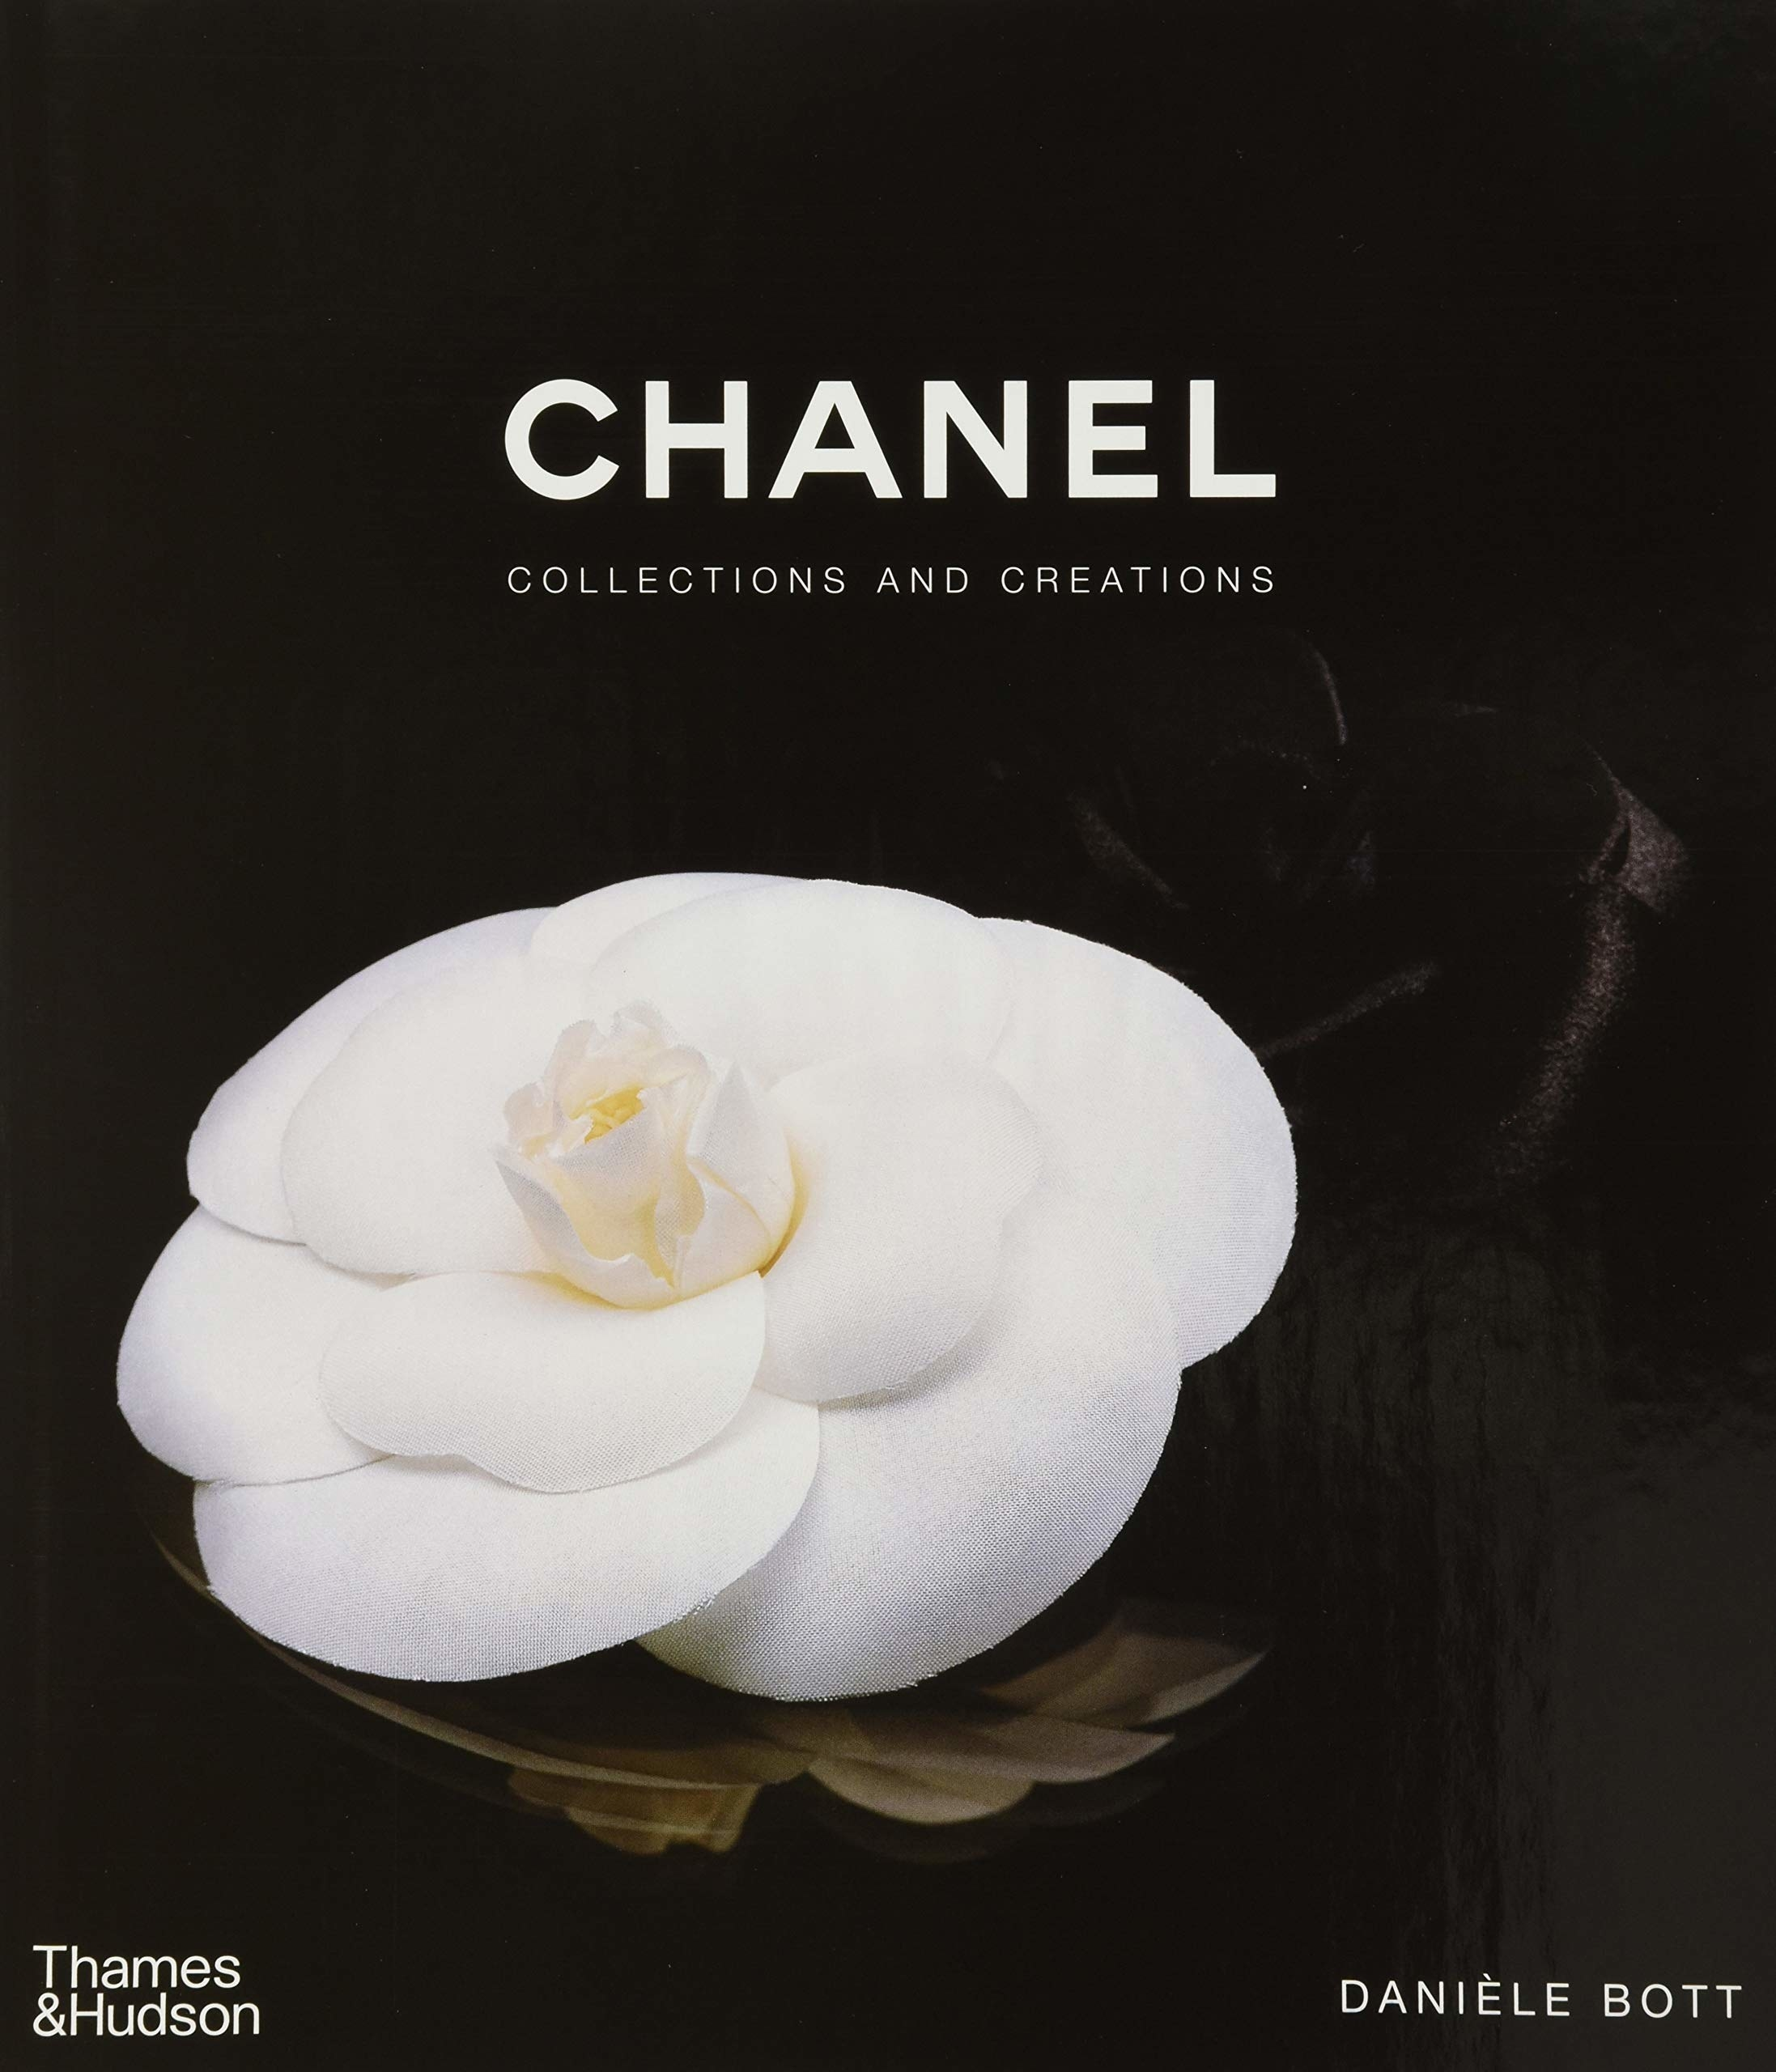 the Chanel book by Danièle Bott